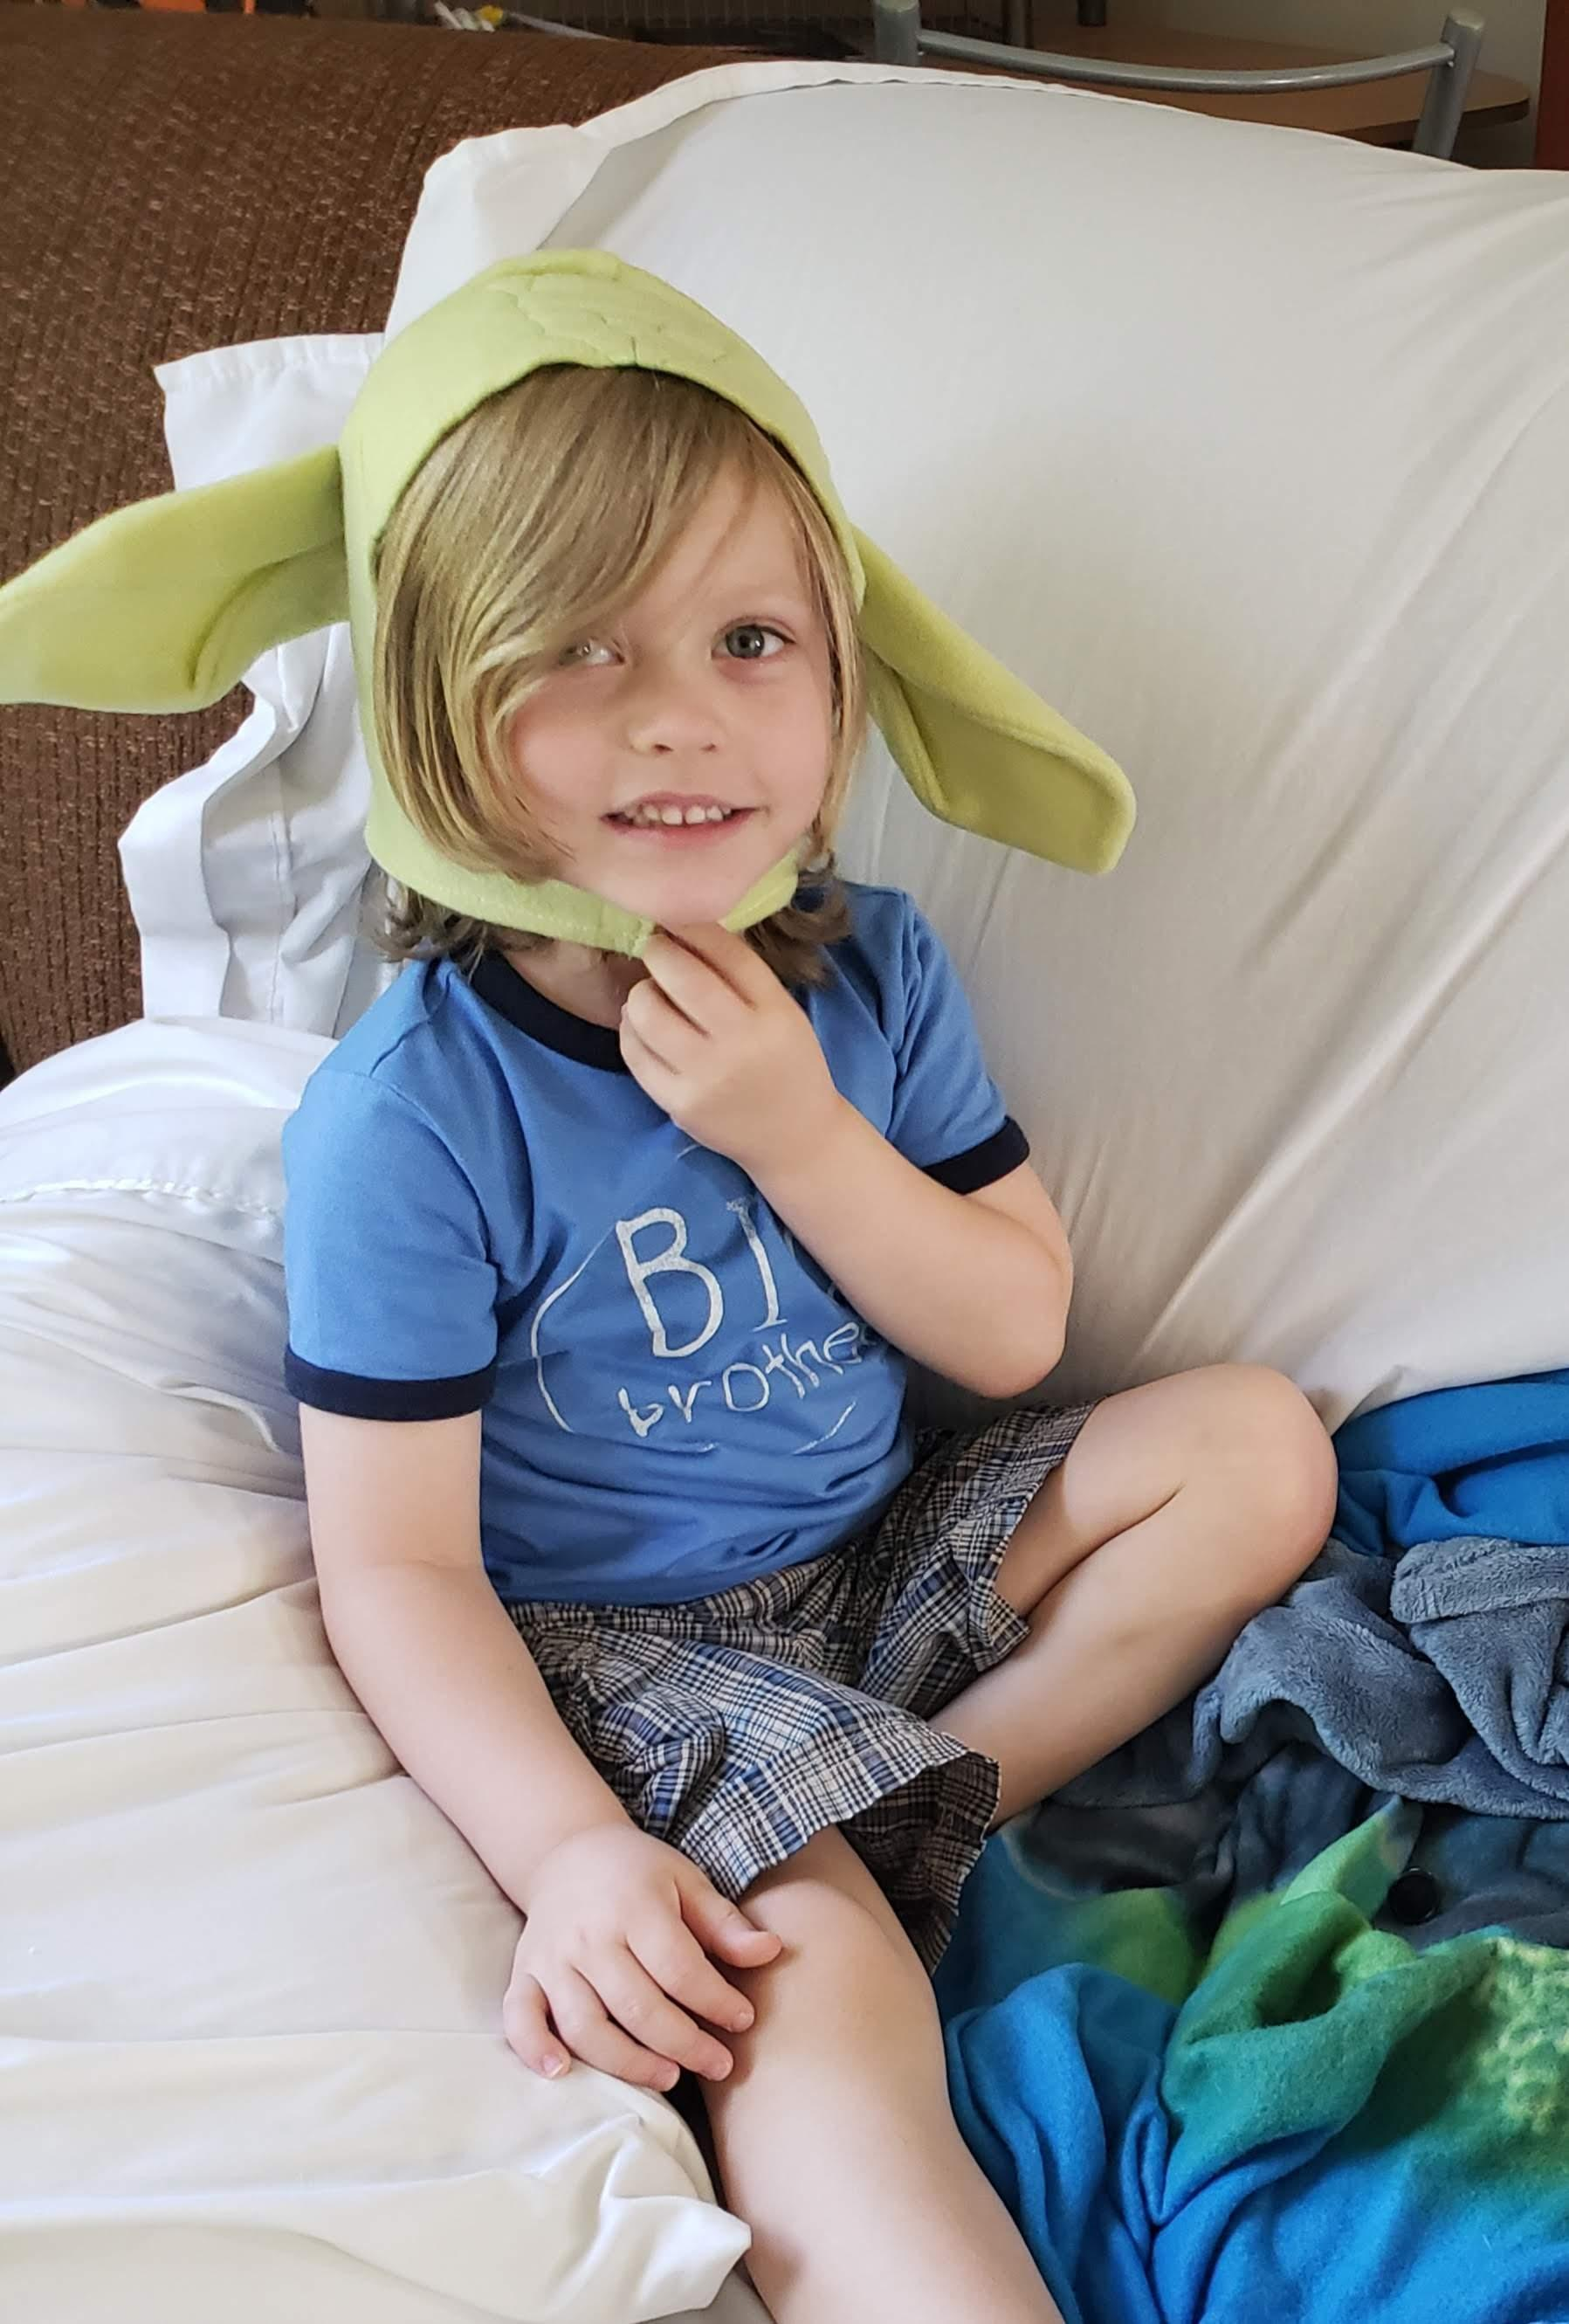 Blonde preschooler in a blue shirt wears a green Yoda ears hat while smiling and sitting on a couch